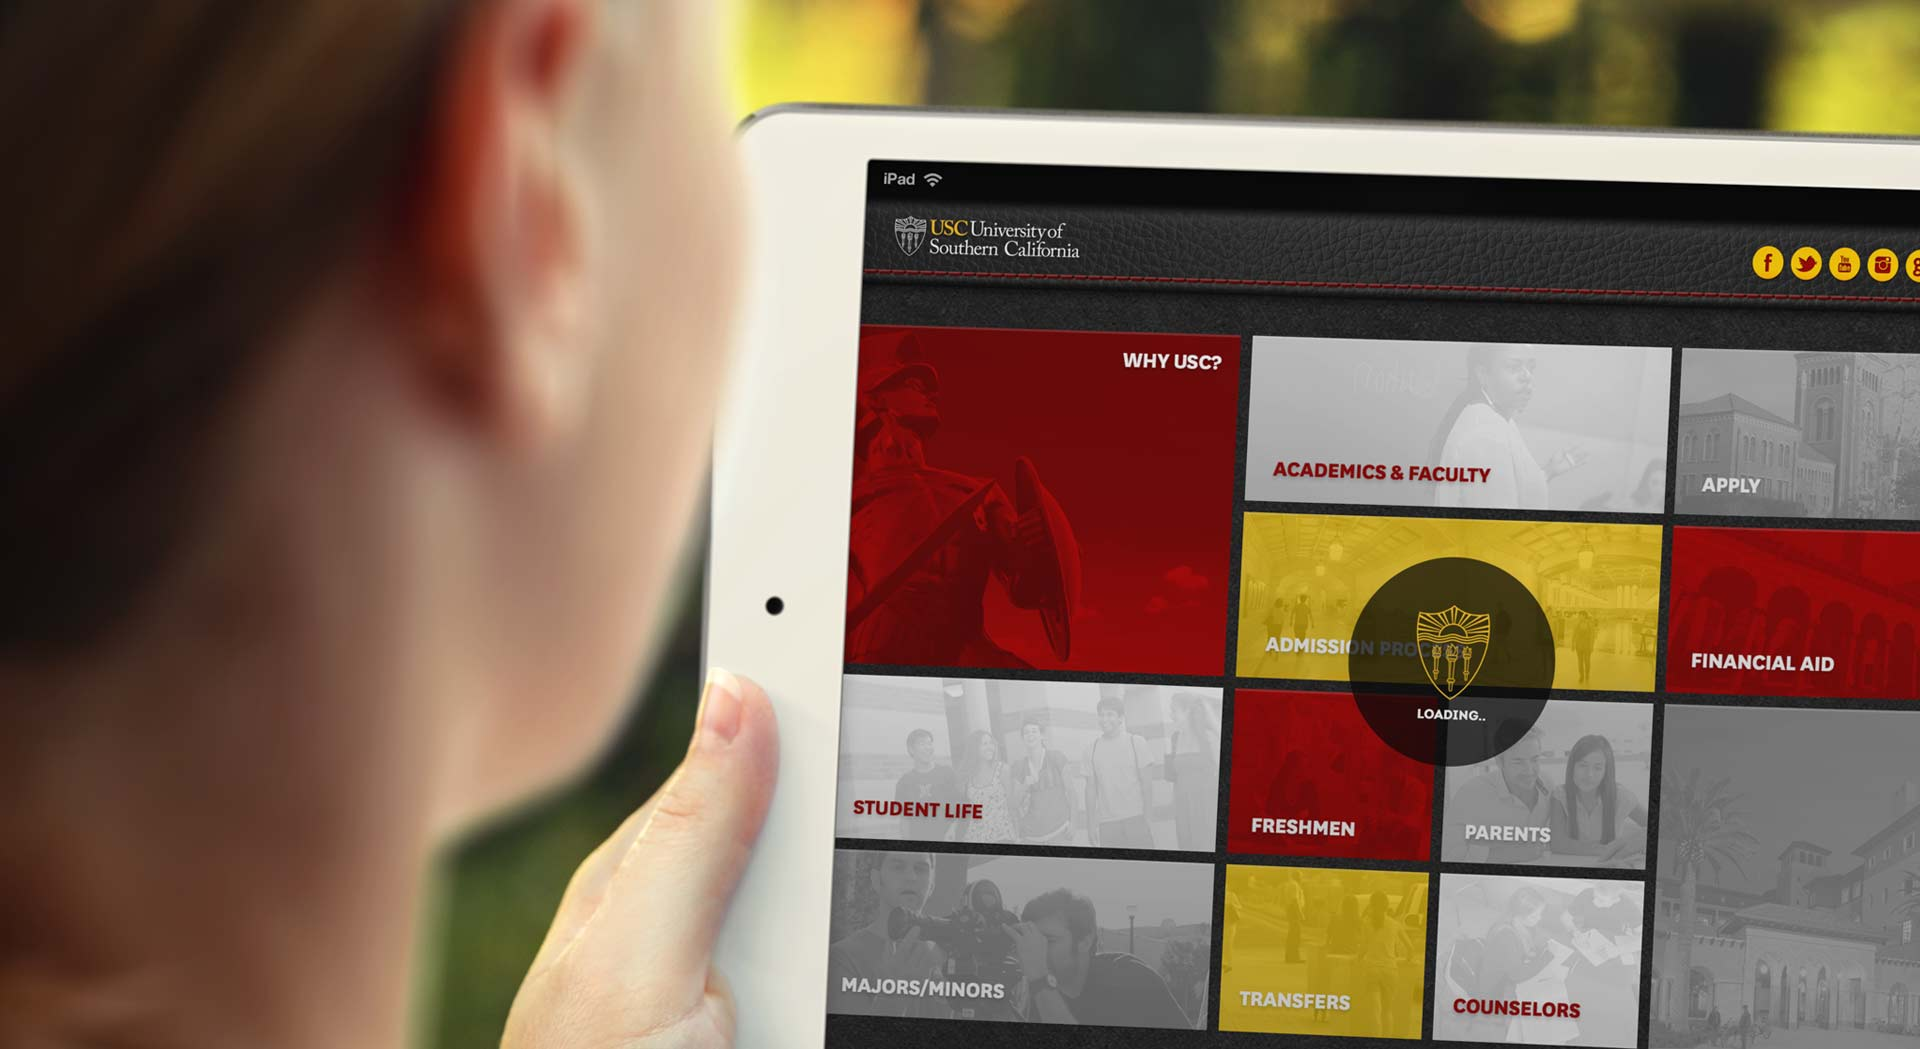 USC Mobile Application